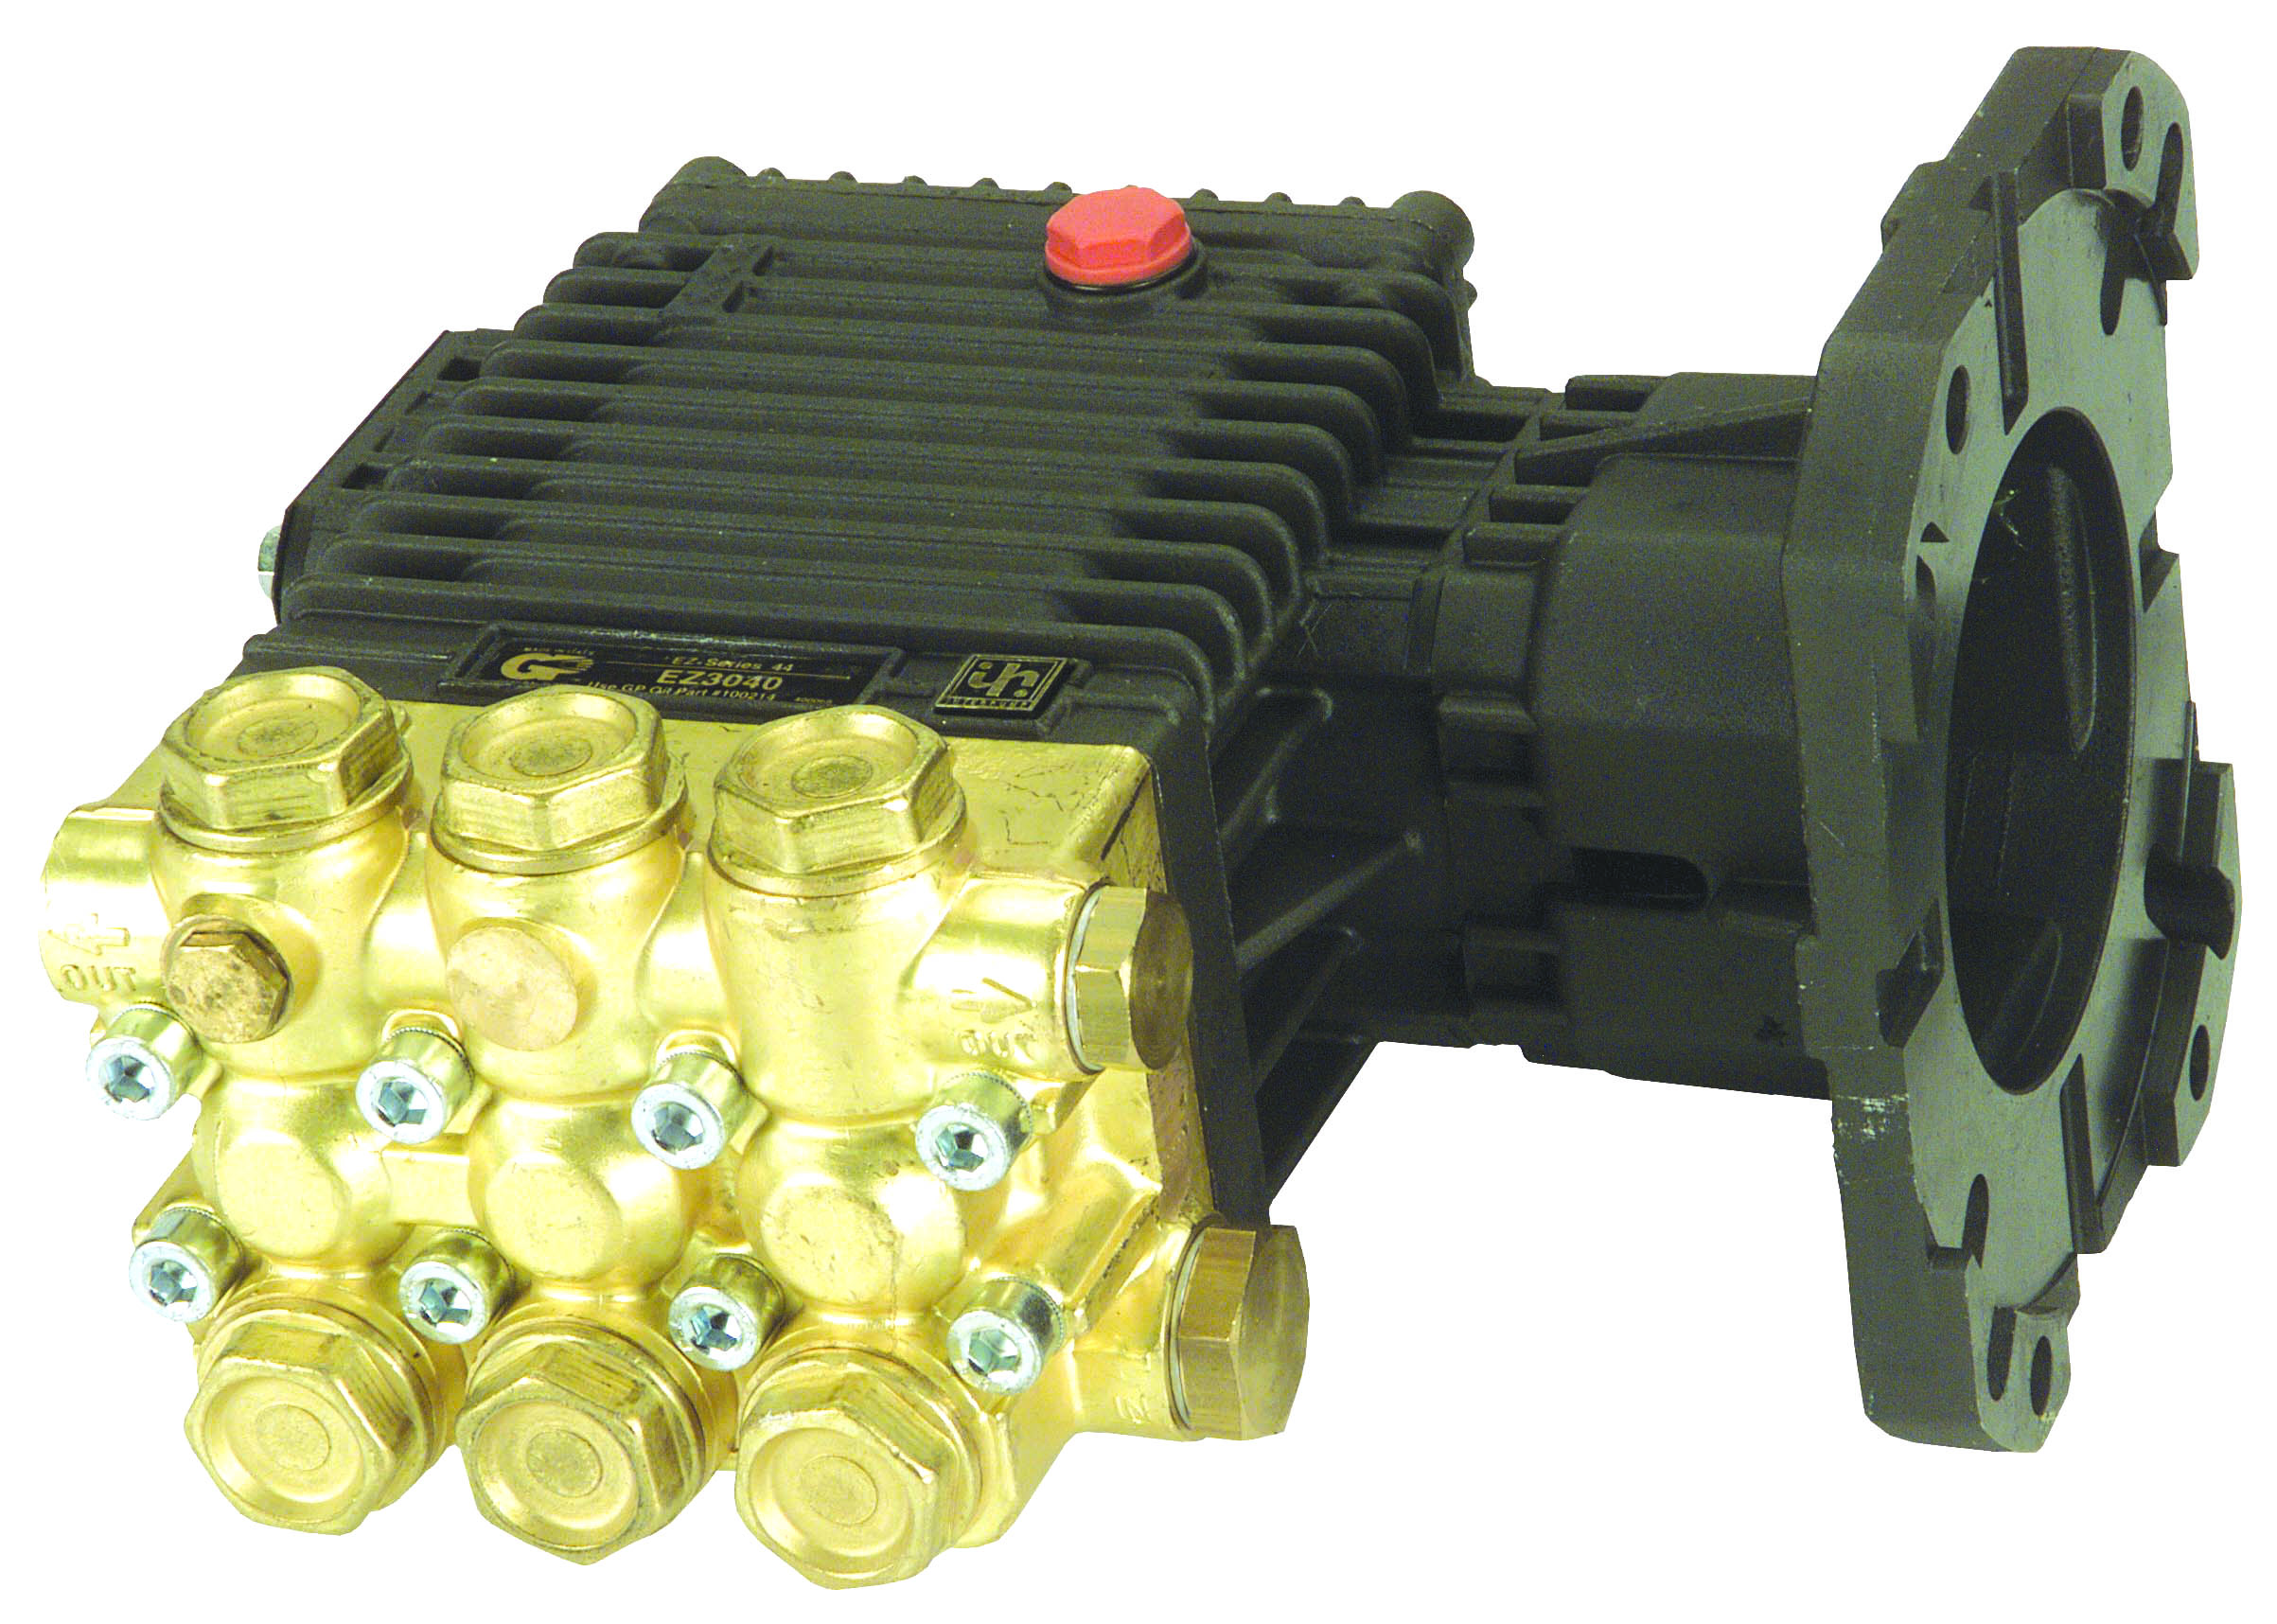 Water pump - #EZ4040G